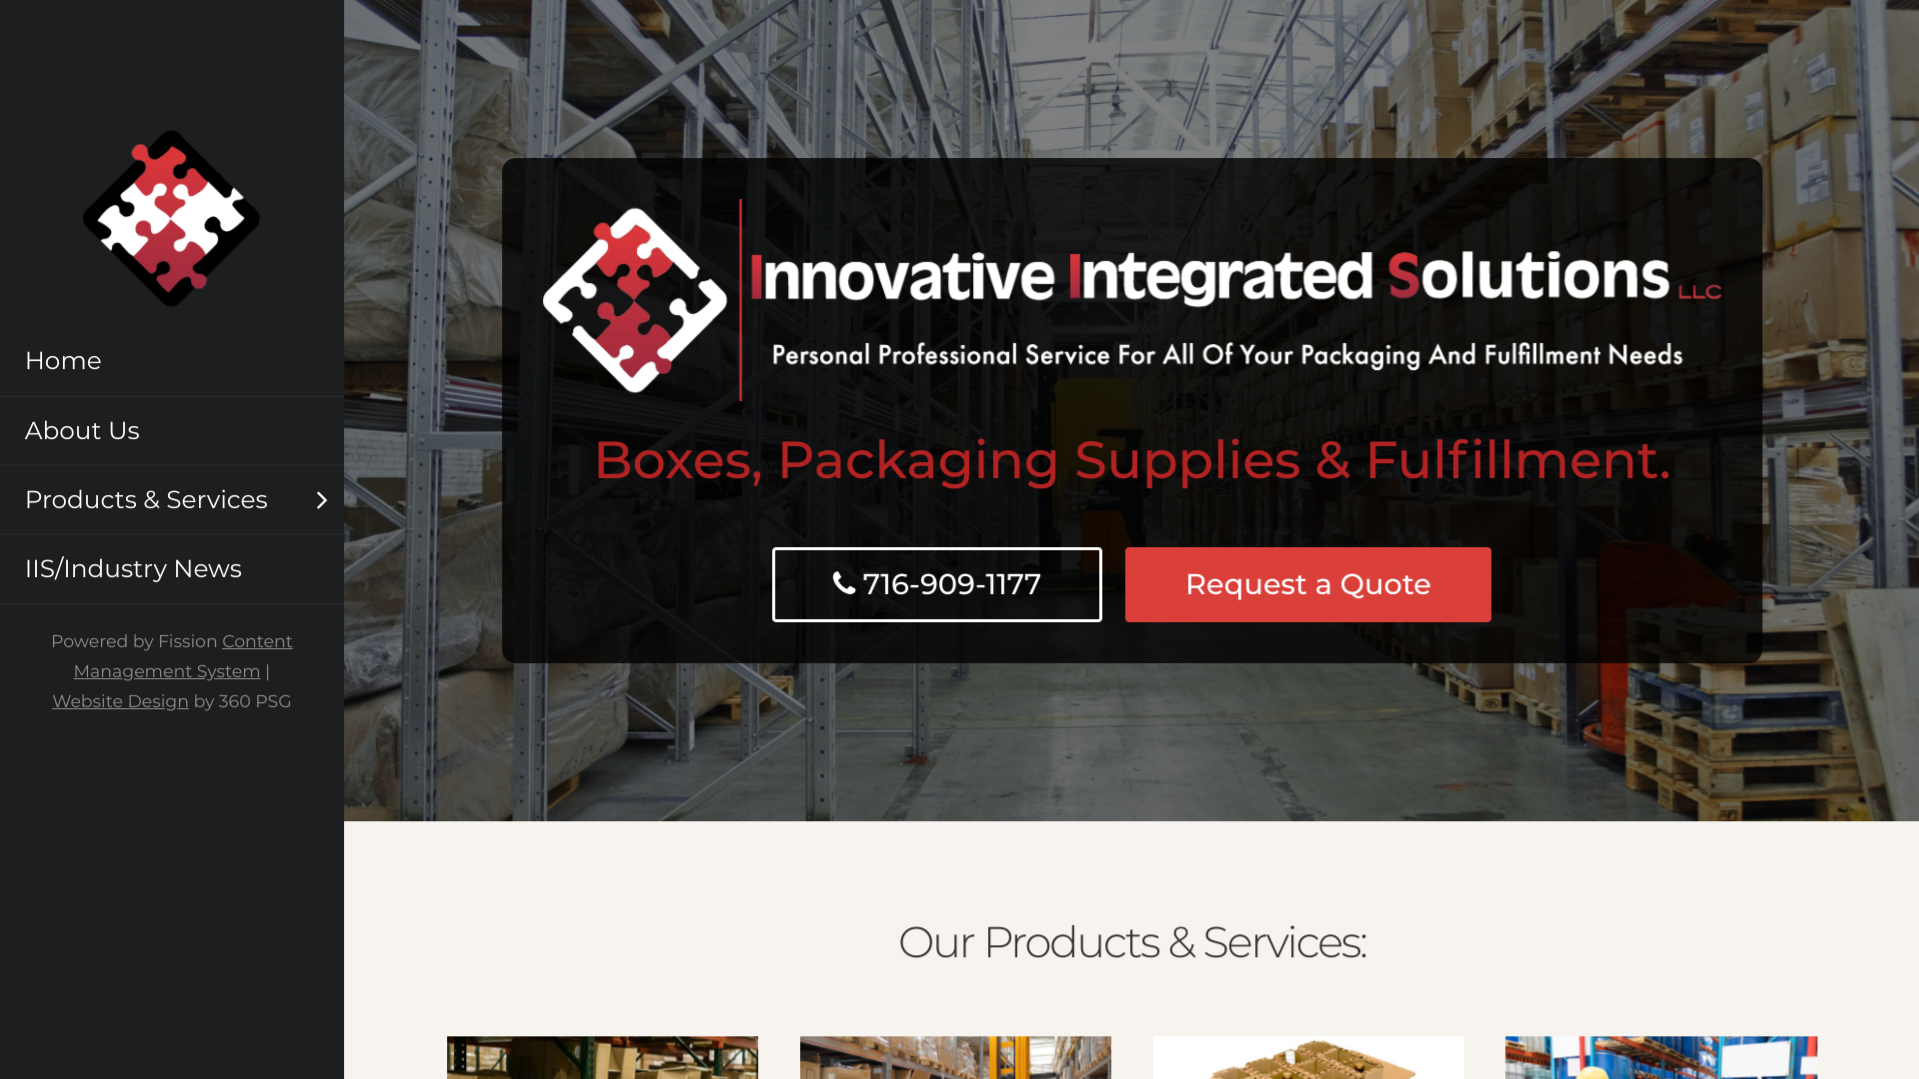 Innovative Integrated Solutions